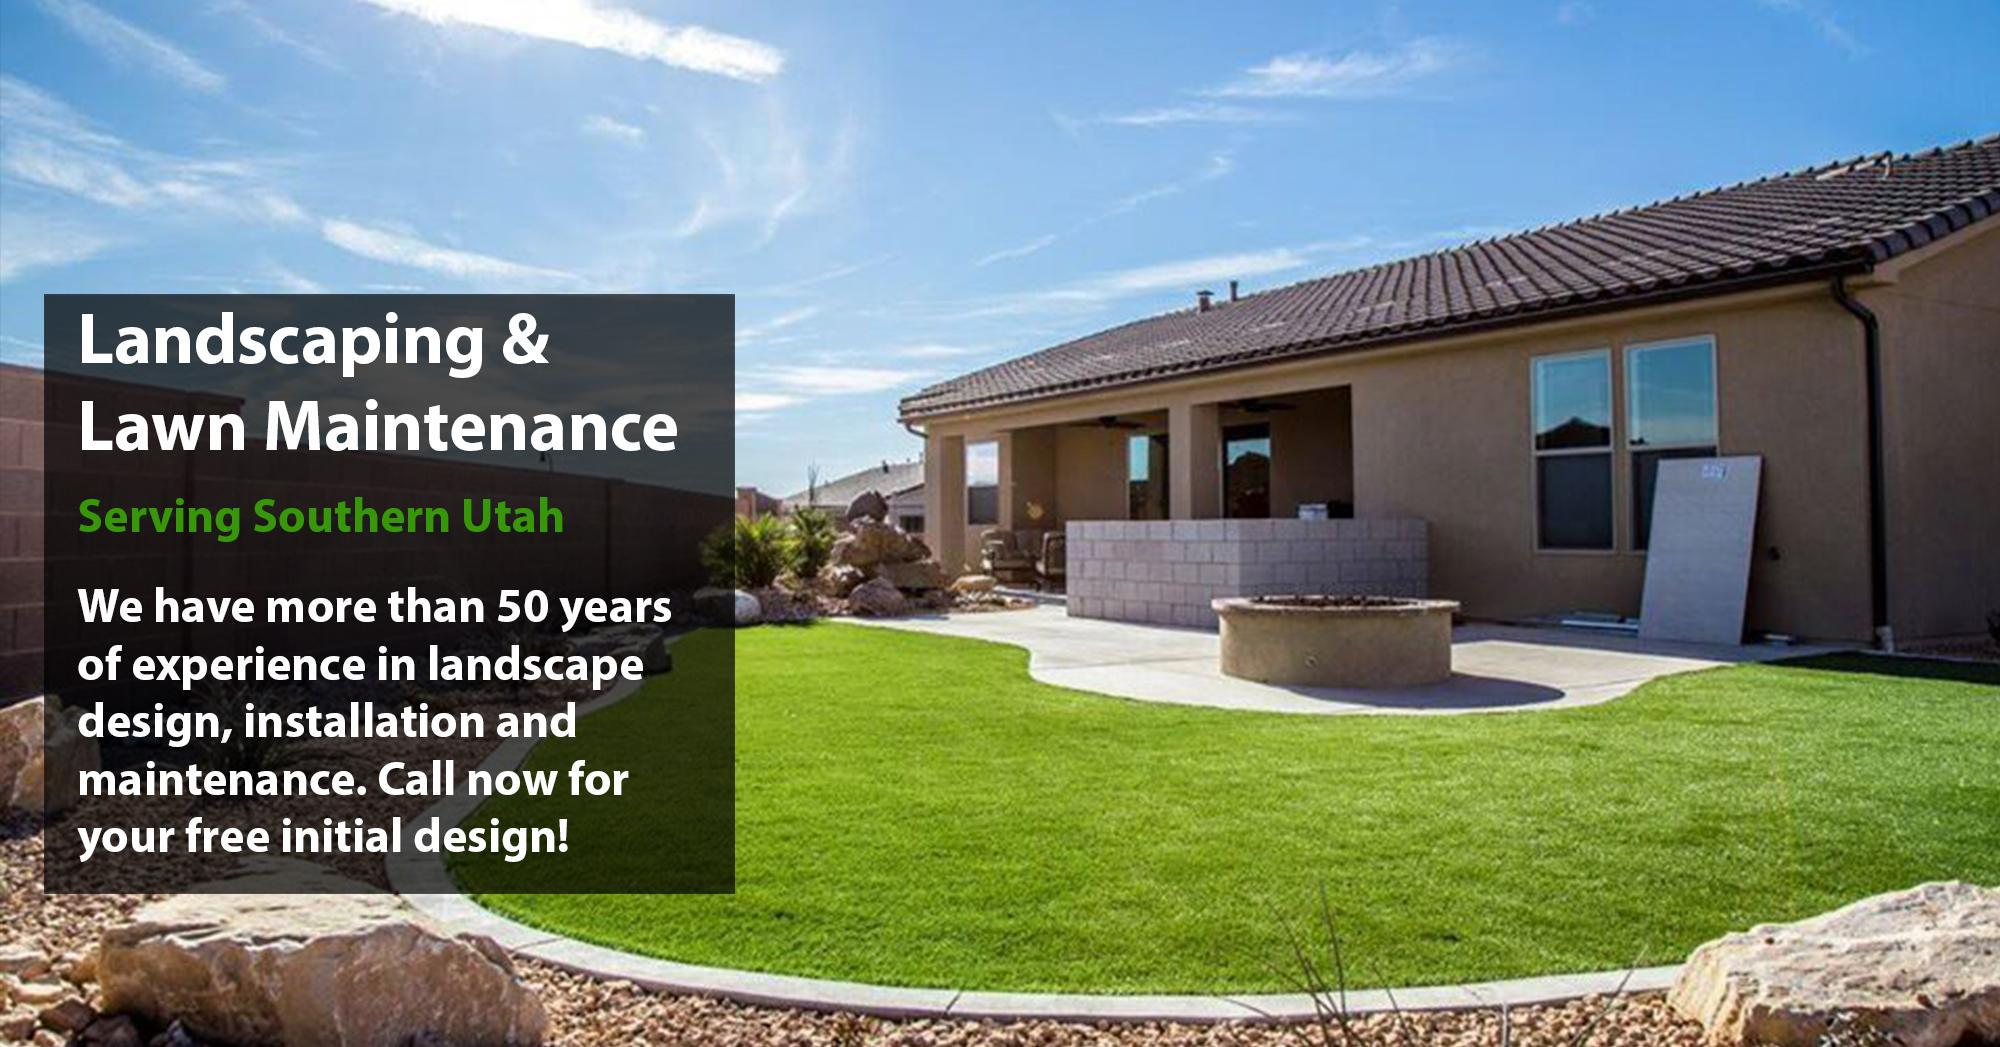 Landscaping and Lawn Maintenance - Serving Southern UTAH